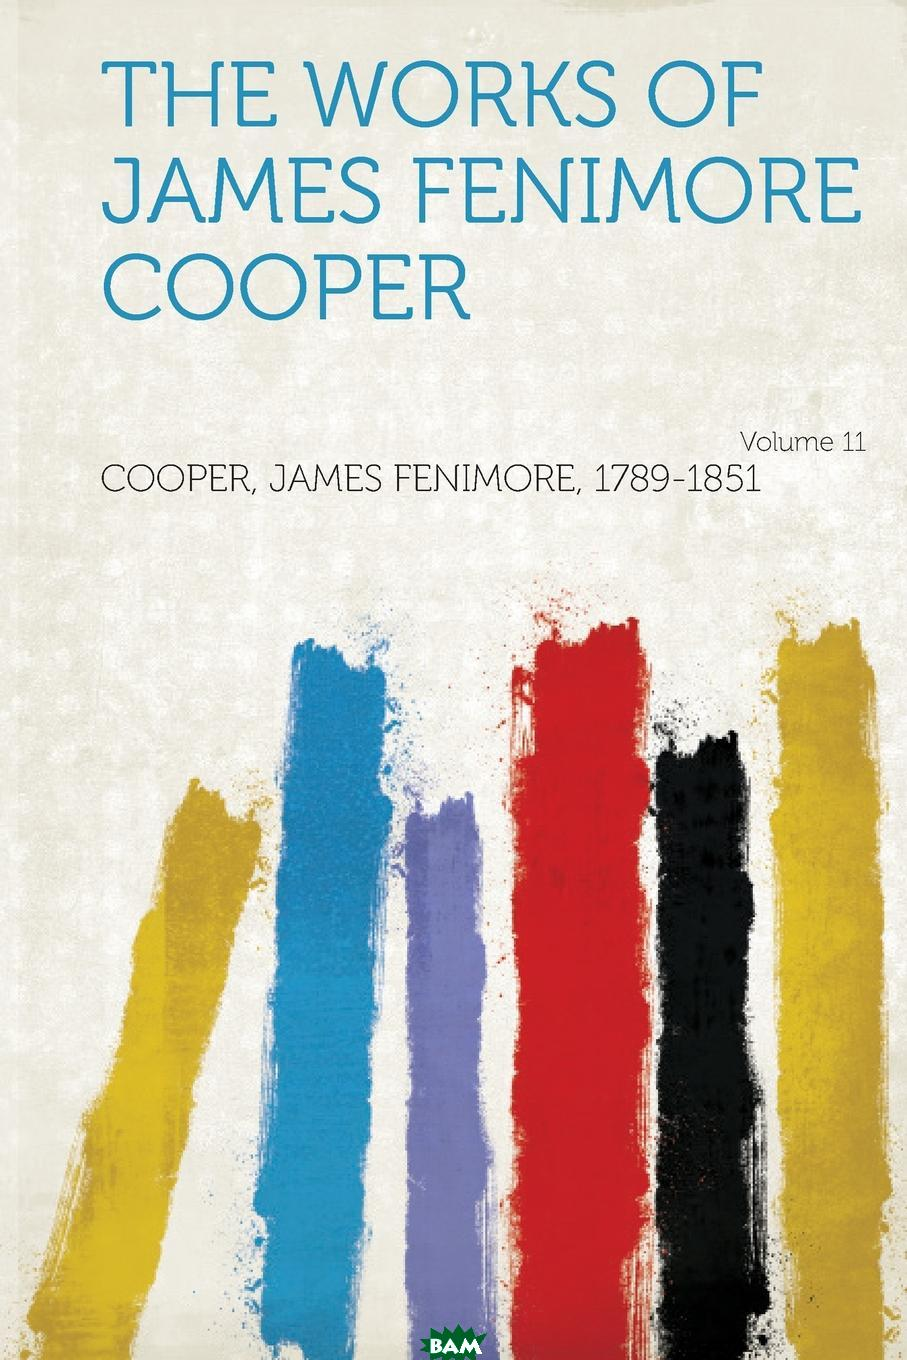 The Works of James Fenimore Cooper Volume 11